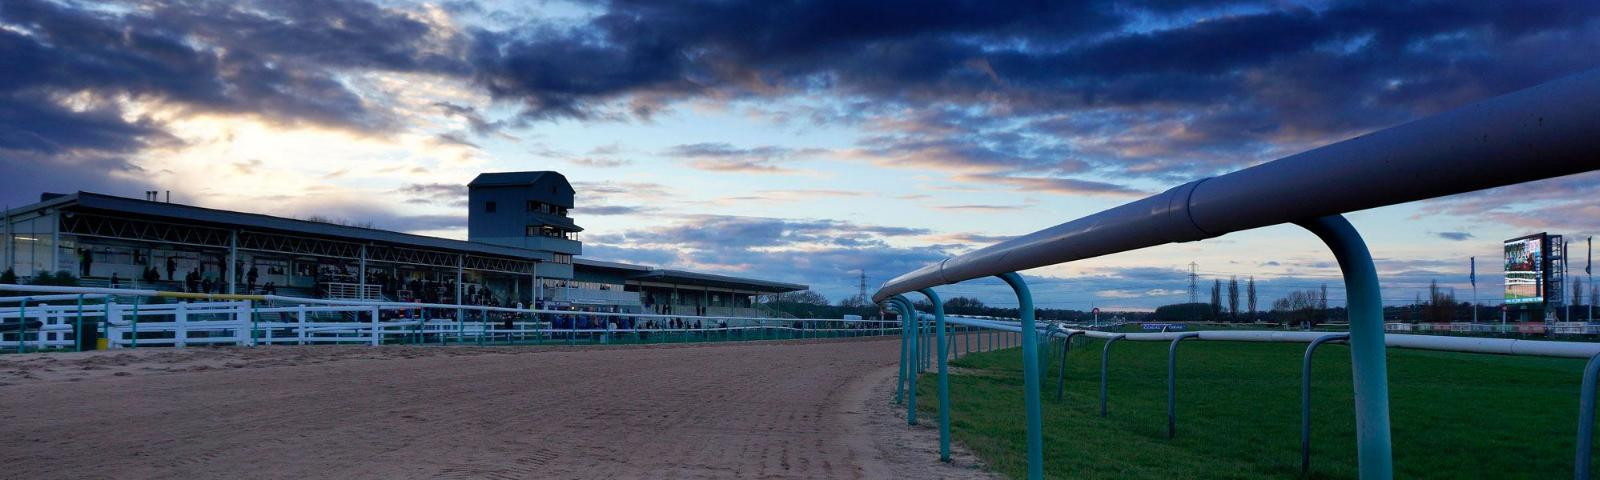 Southwell Racecourse at dusk